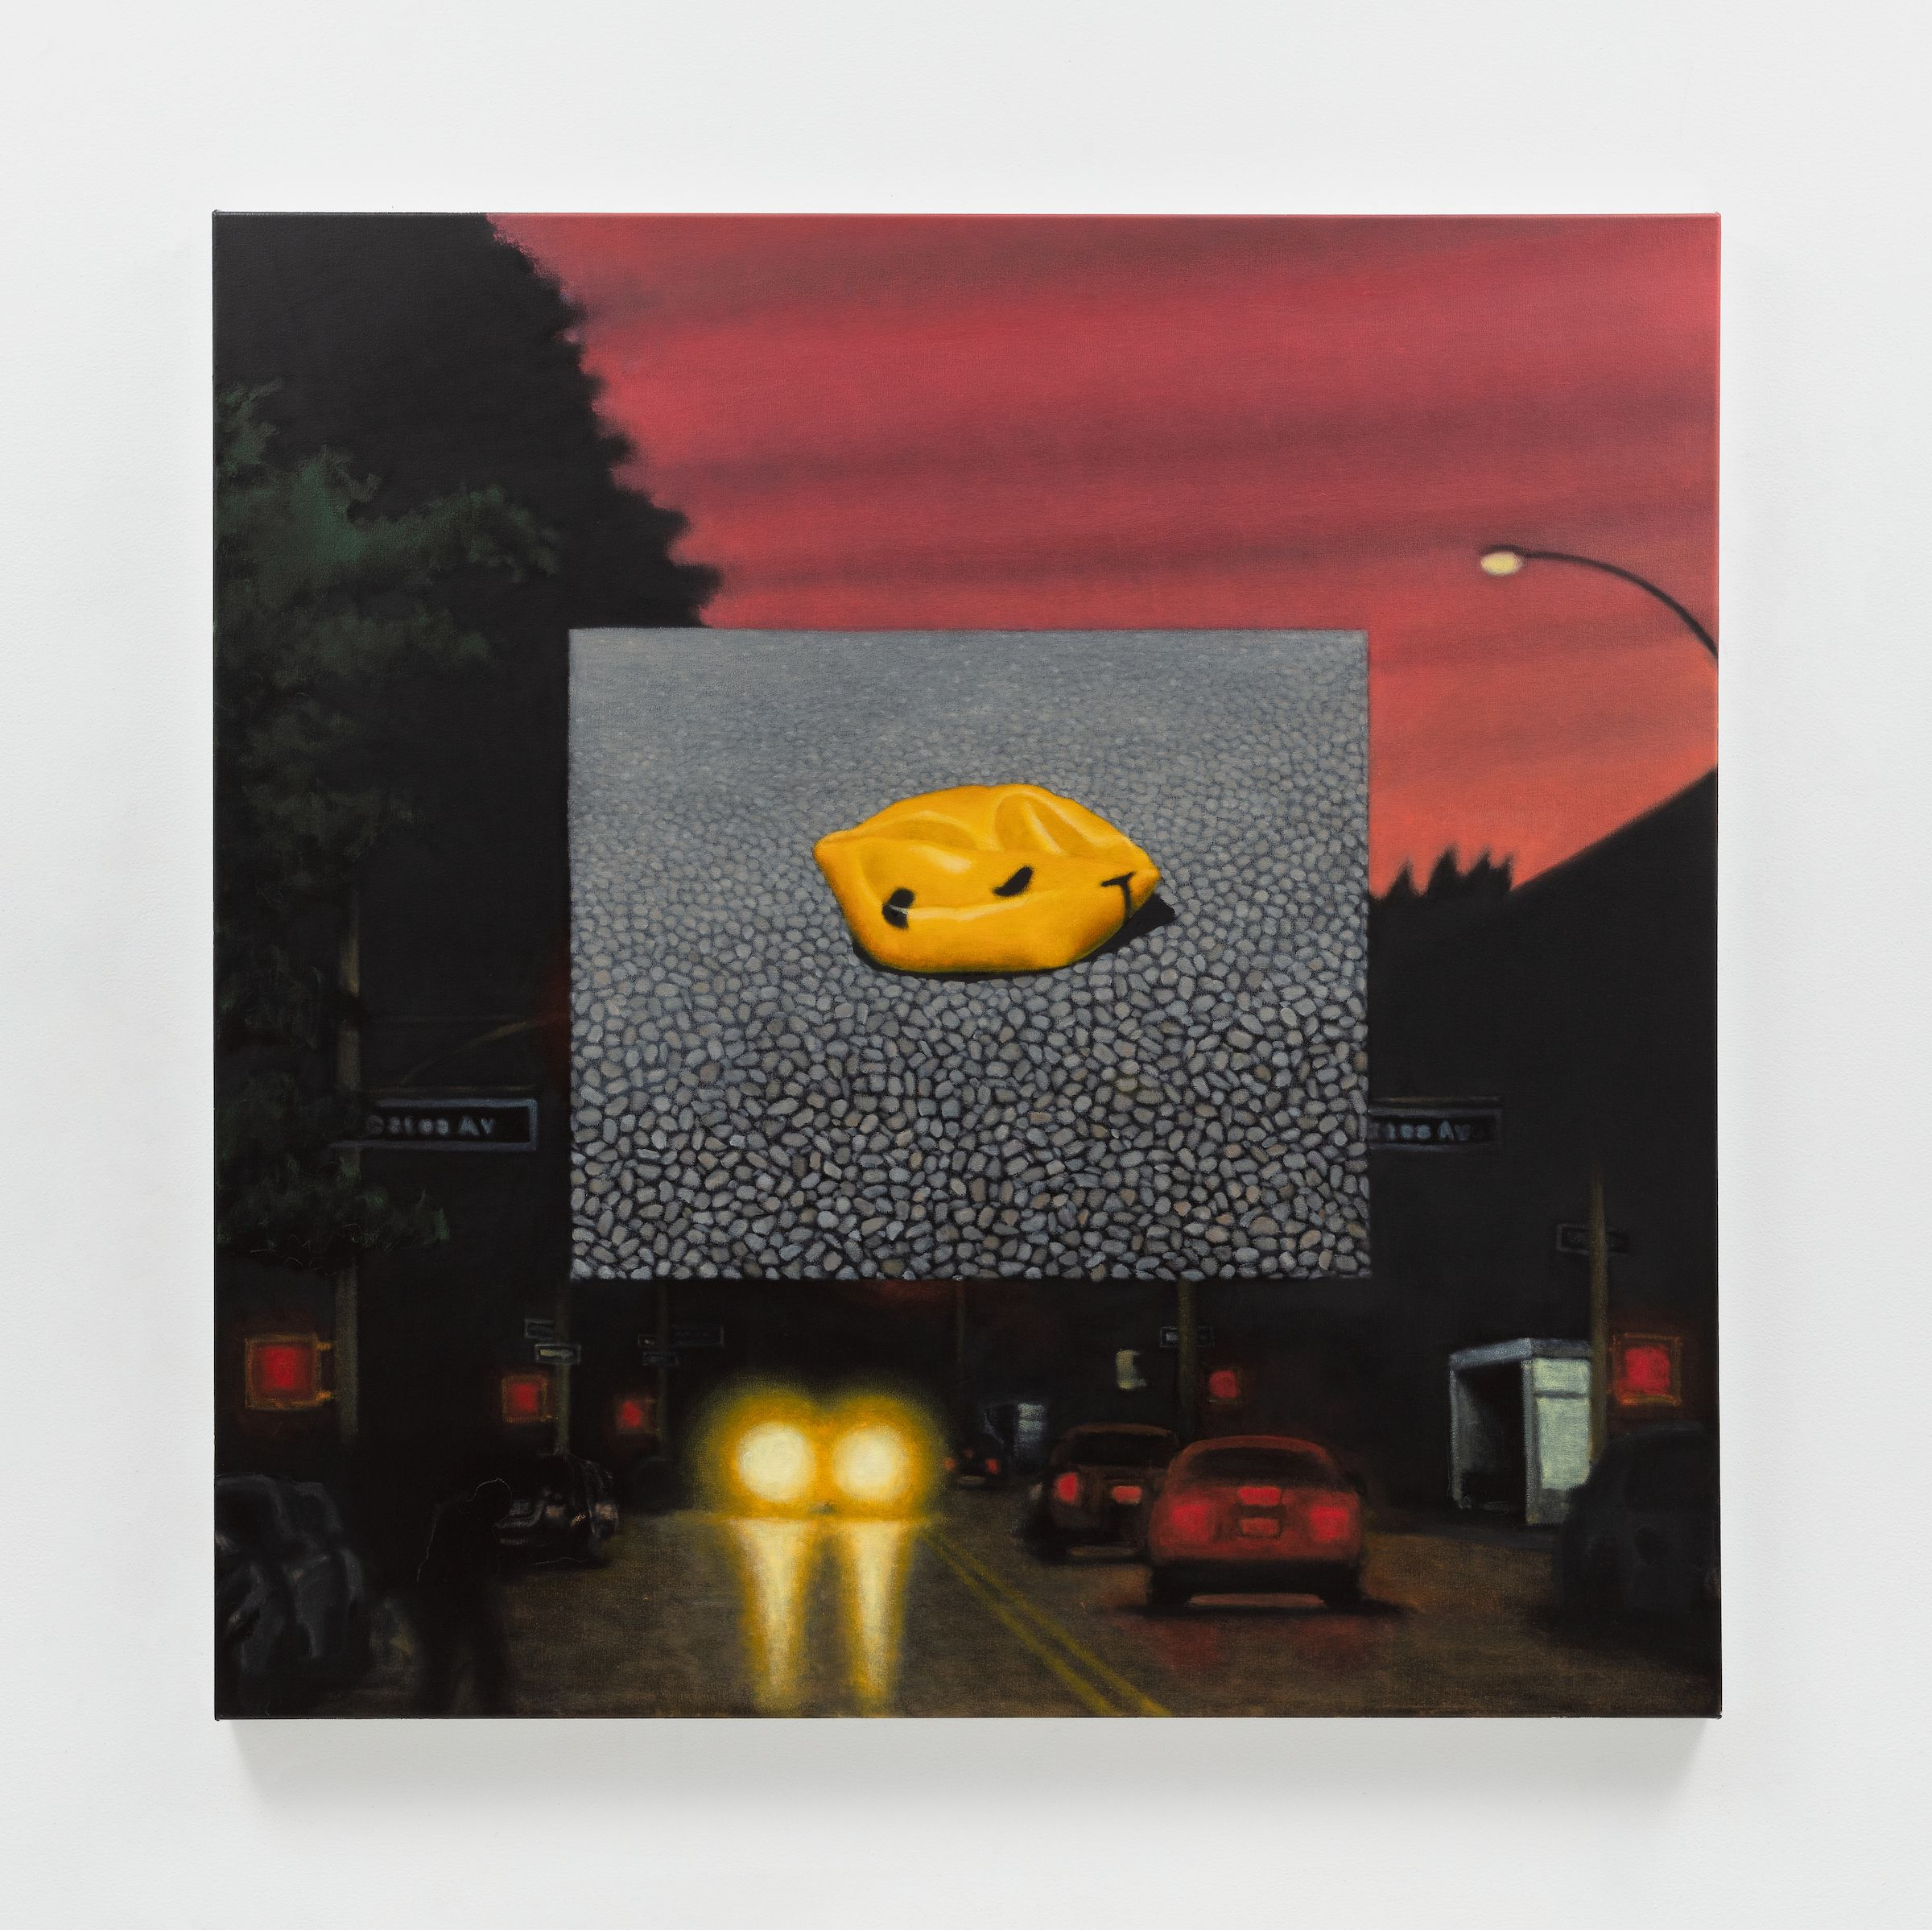 Gregory Edwards, Pedestrian Painting 7, 2020, from